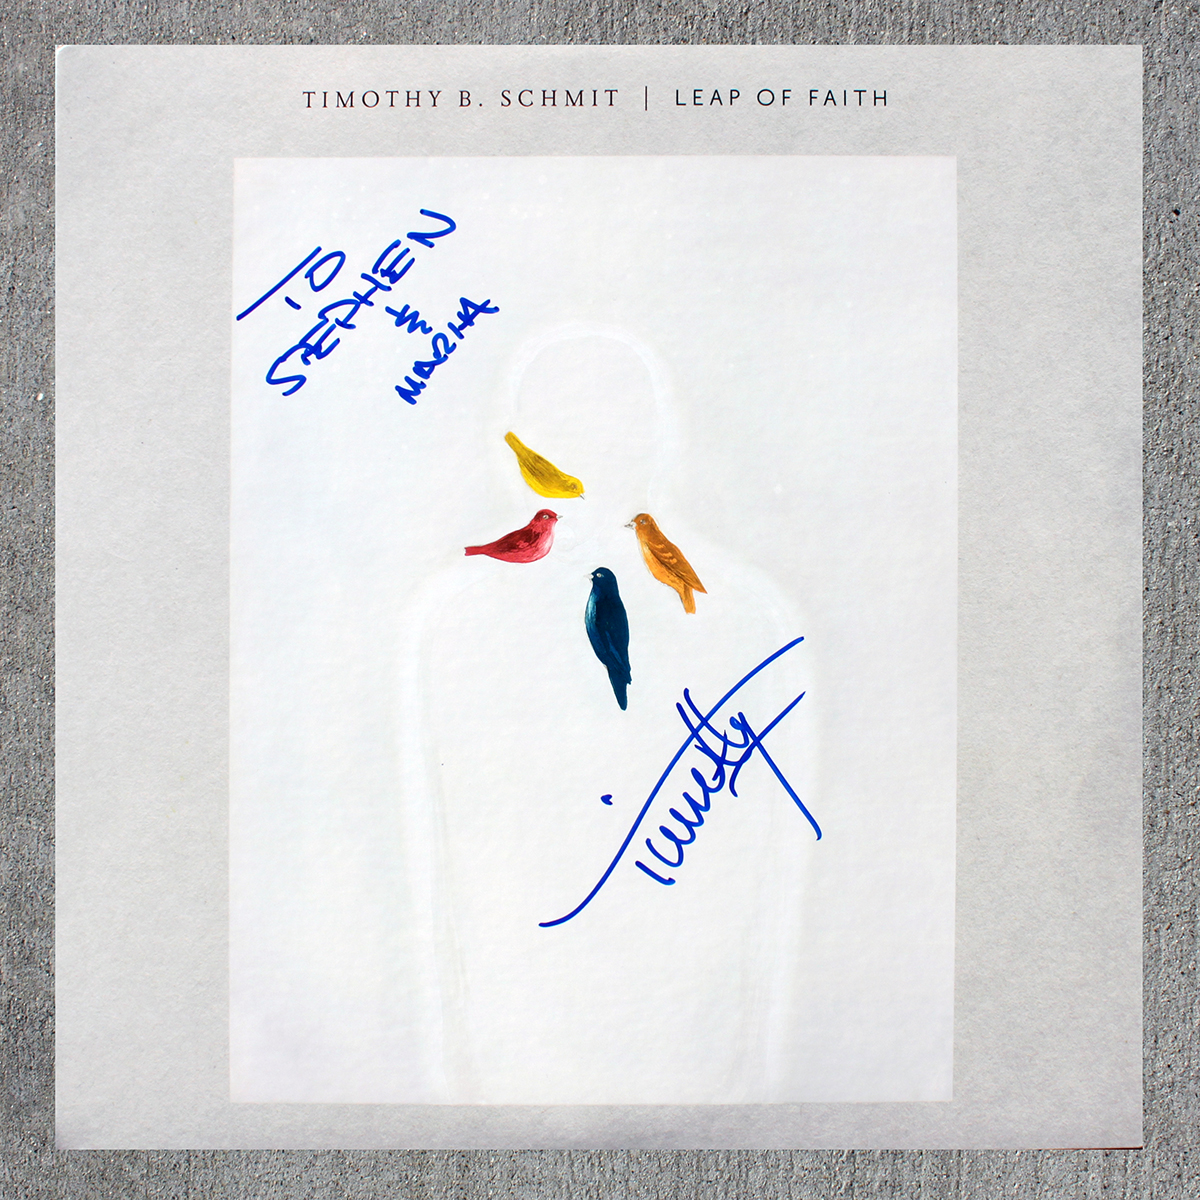 Timothy B Schmit LP - Leap of Faith